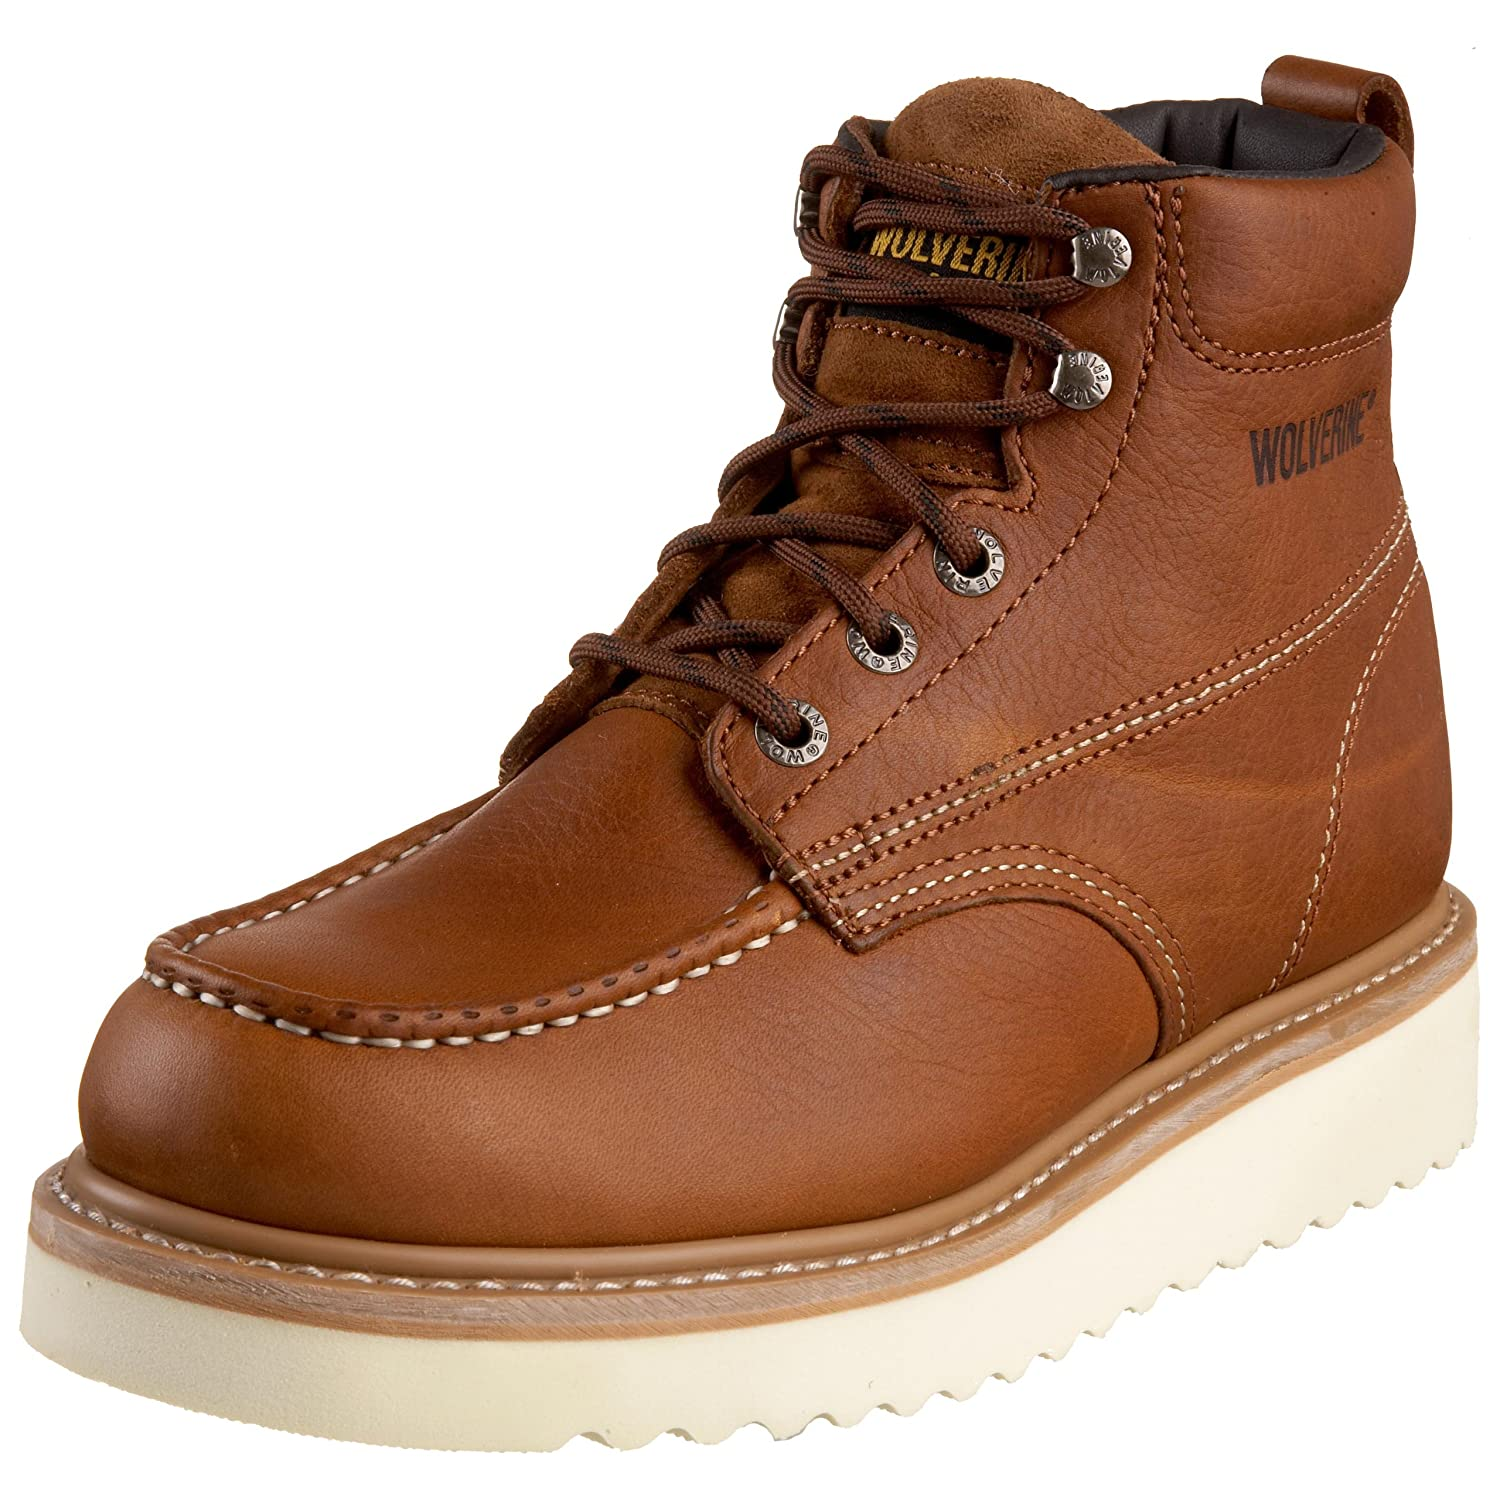 Buy GW Men's ST Steel Toe Work Boots and other Industrial & Construction Boots at grinabelel.tk Our wide selection is eligible for free shipping and free returns.